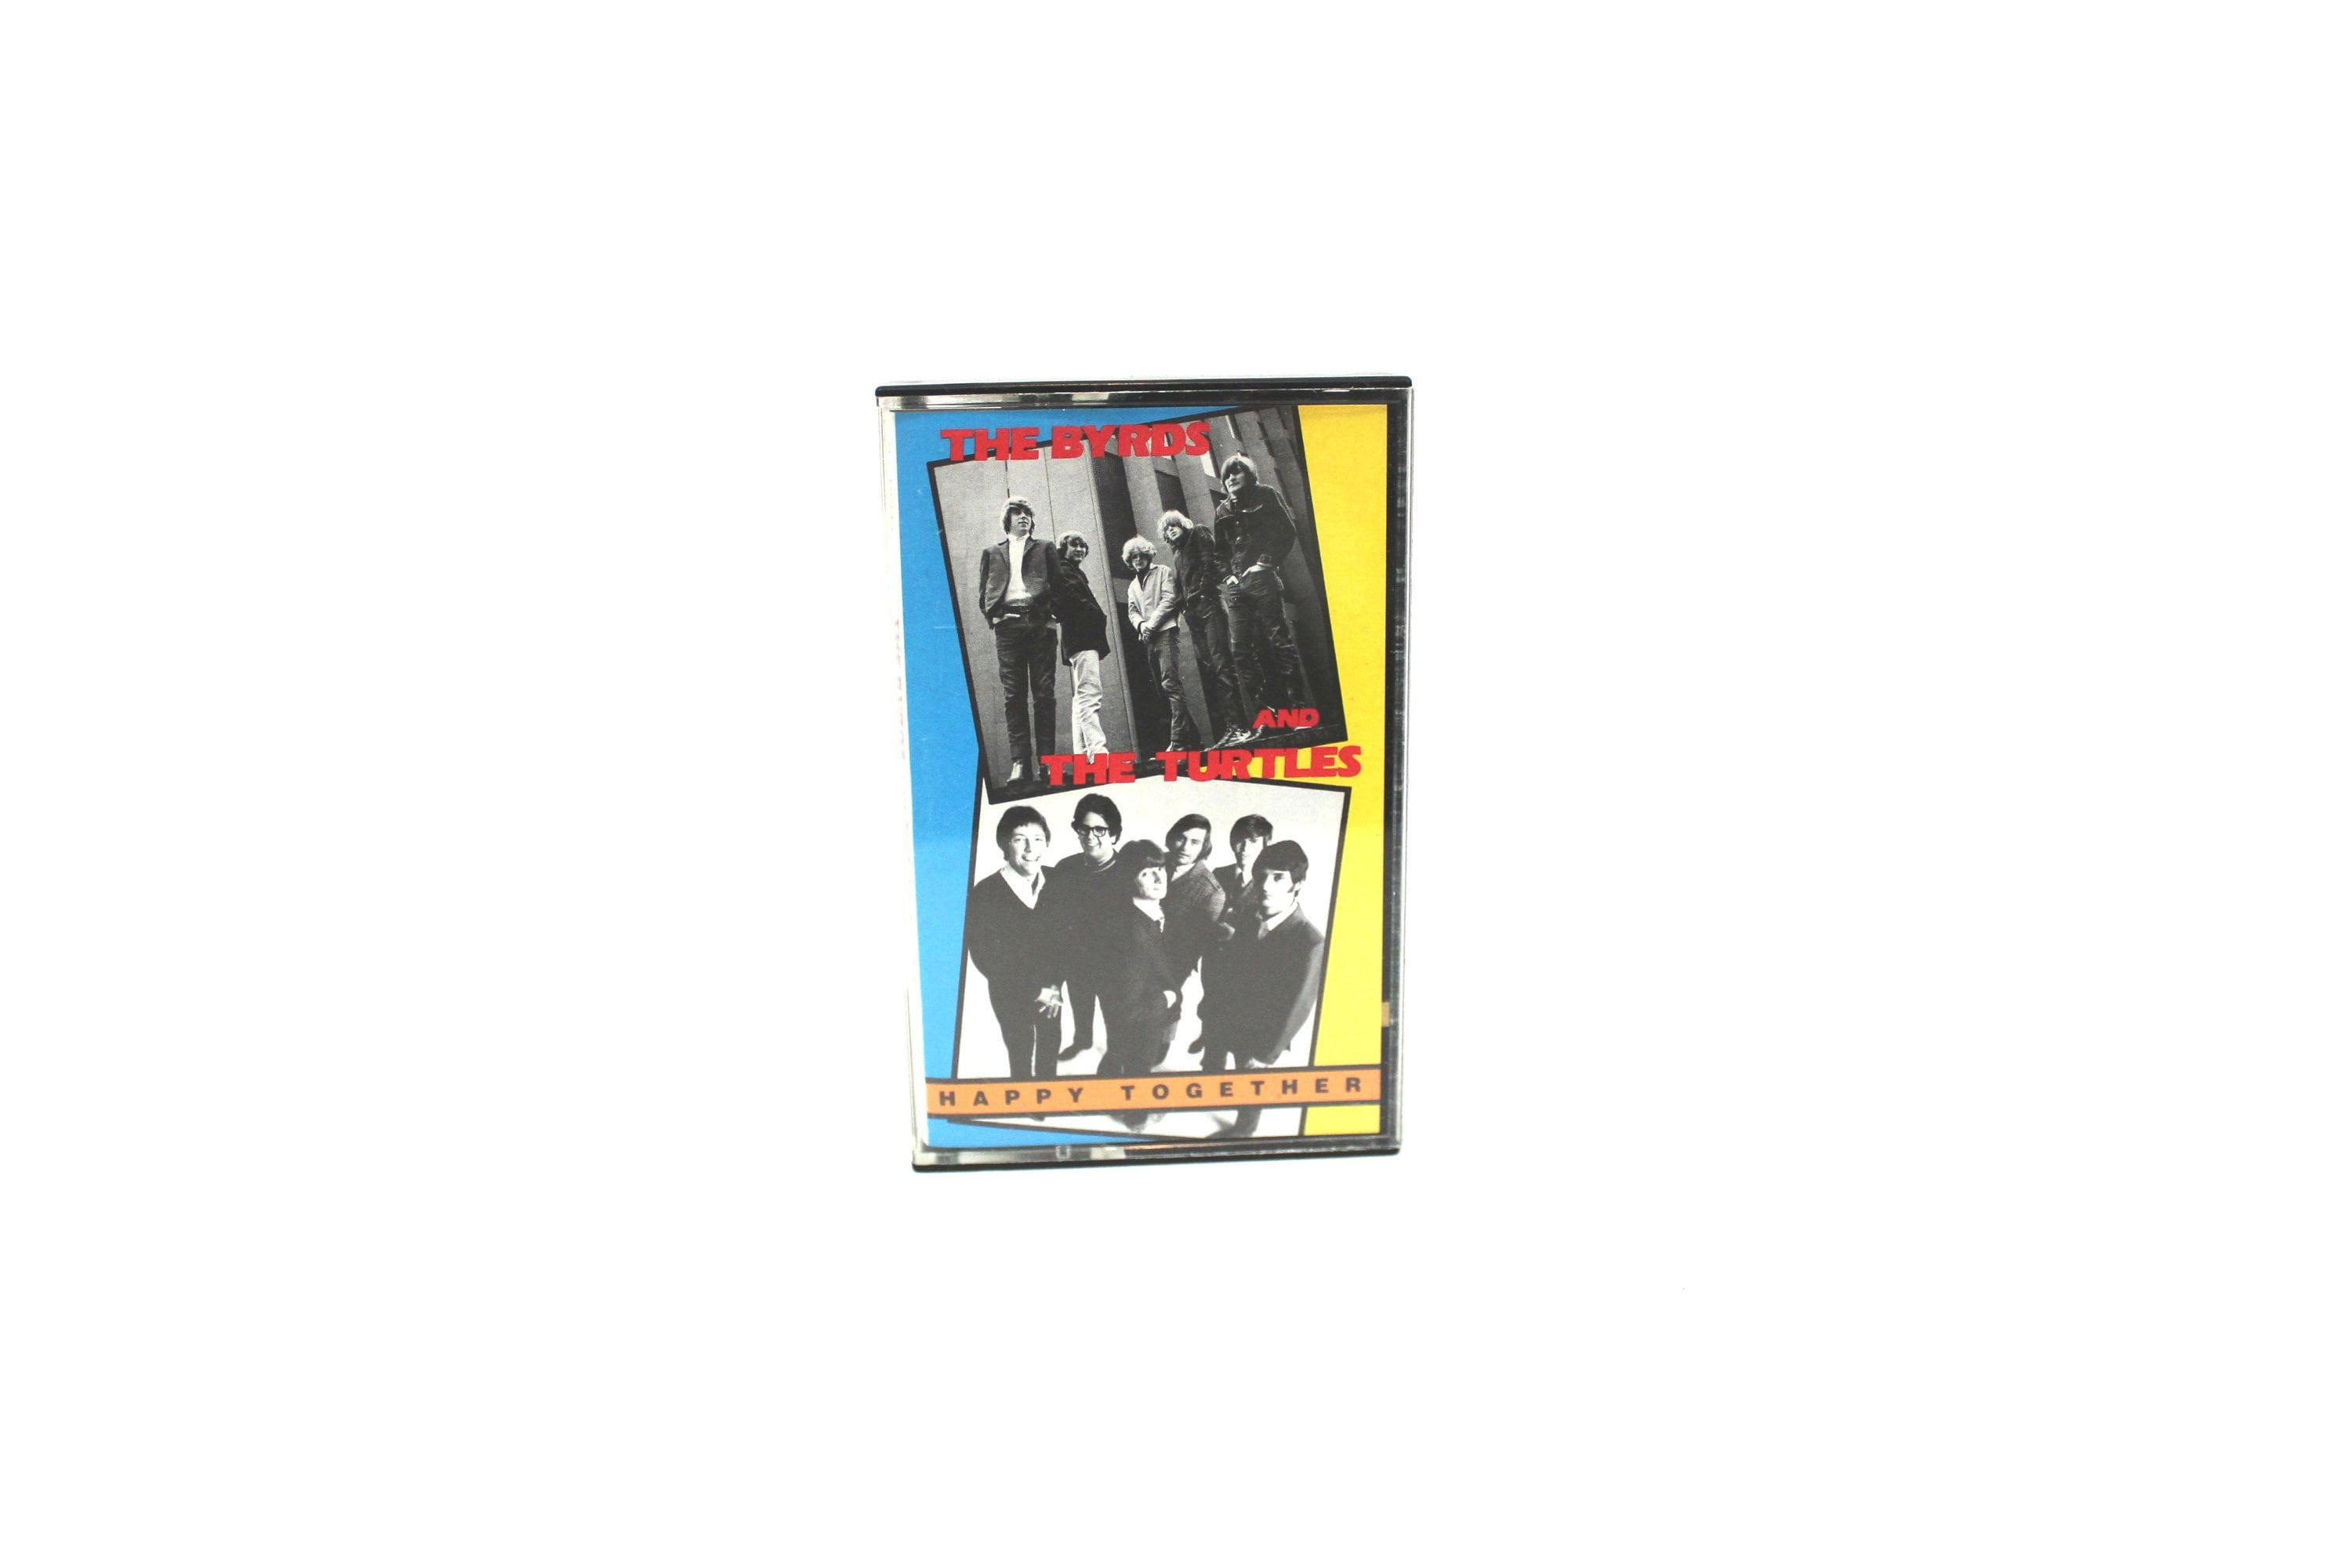 The Turtles And Byrds Vintage Cassette Tape 60s Psychedelic Music Rare Happy Together Psych Rock